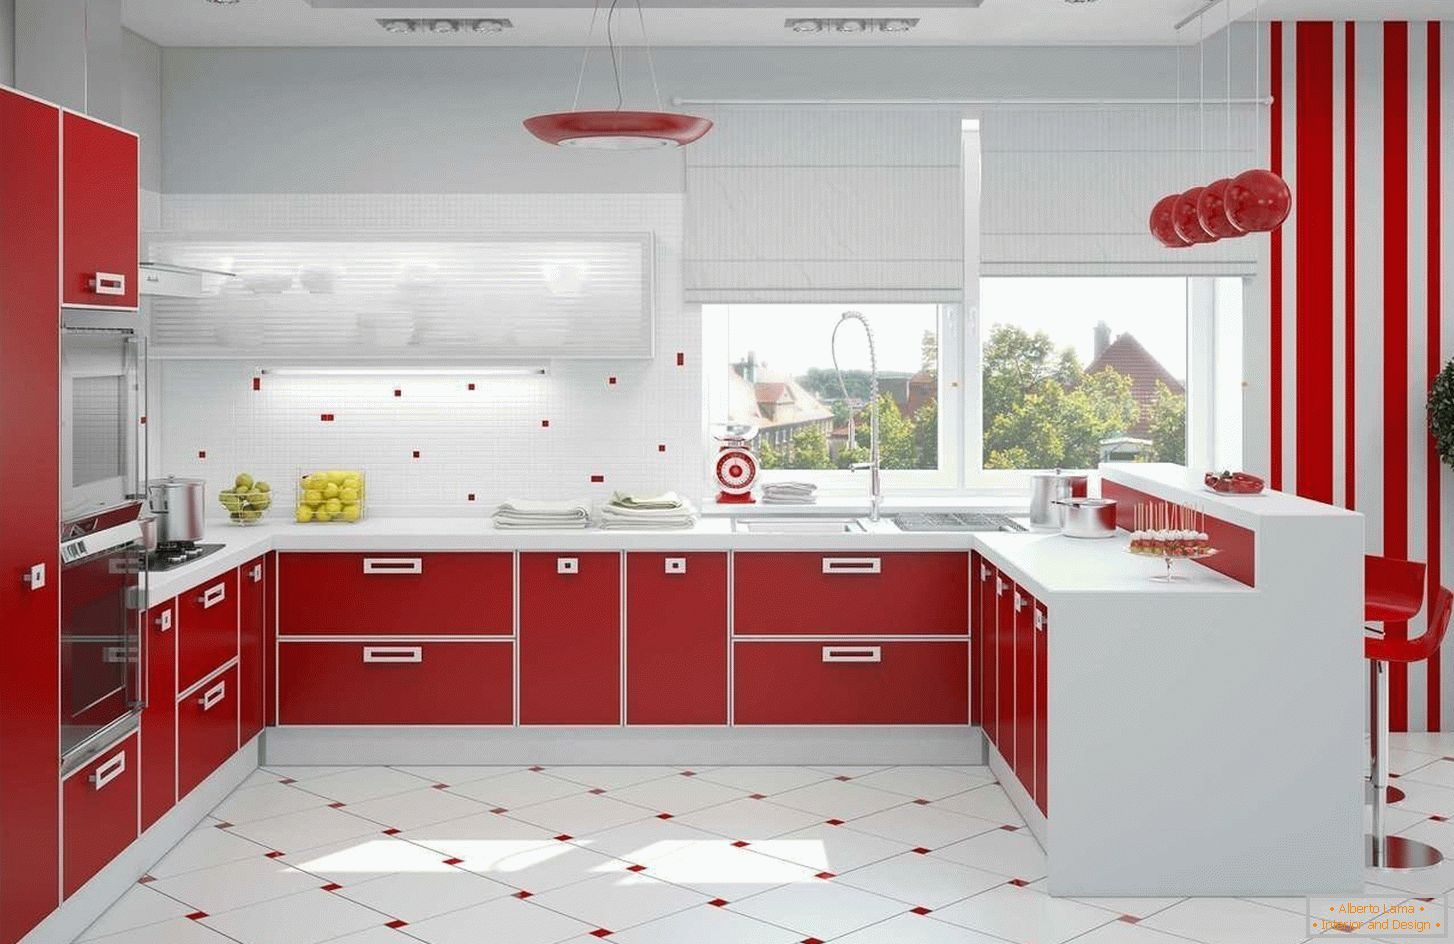 Red and white kitchen interior